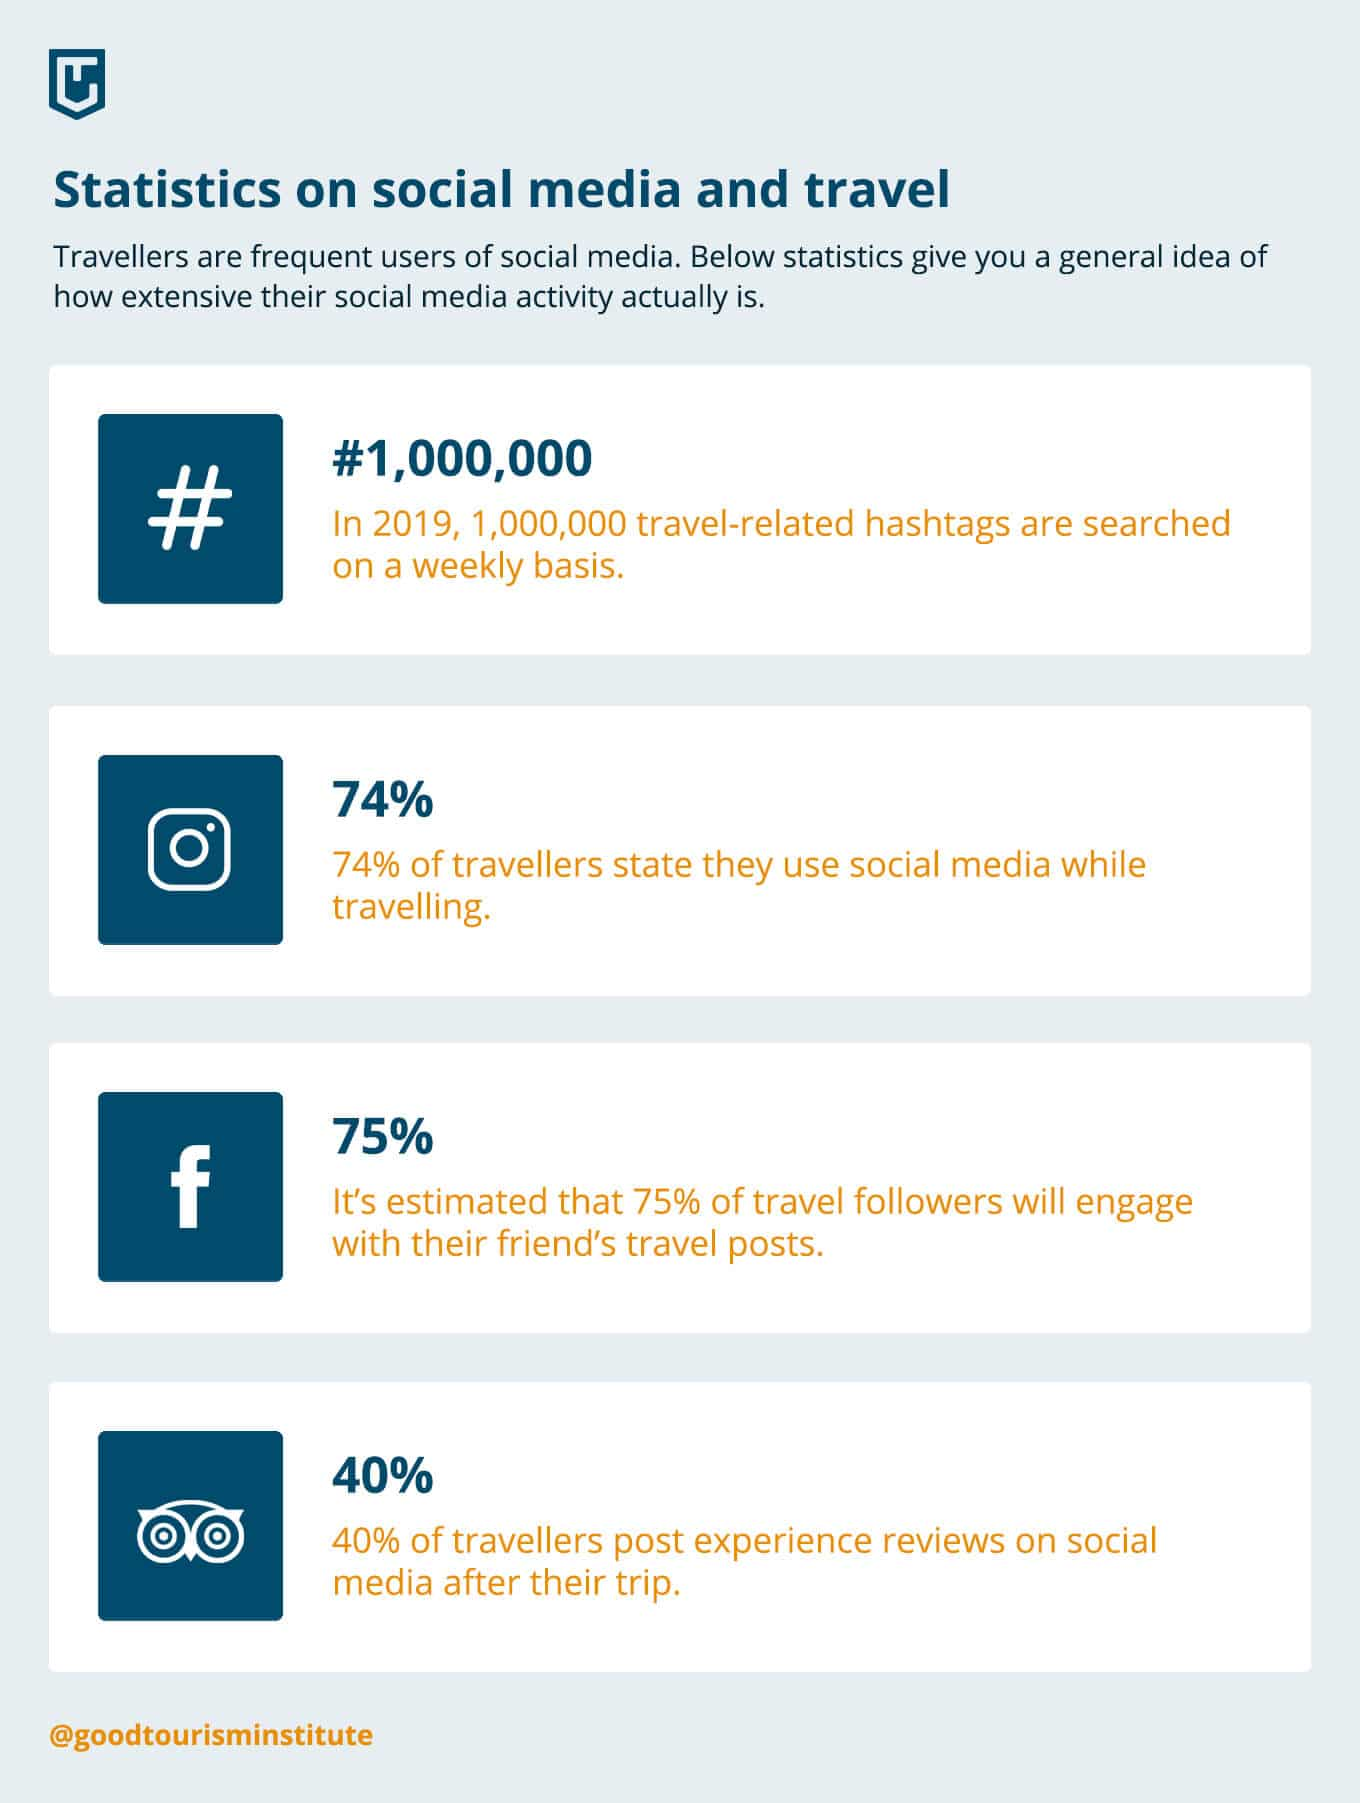 Statistics on how travellers use social media (infographic)